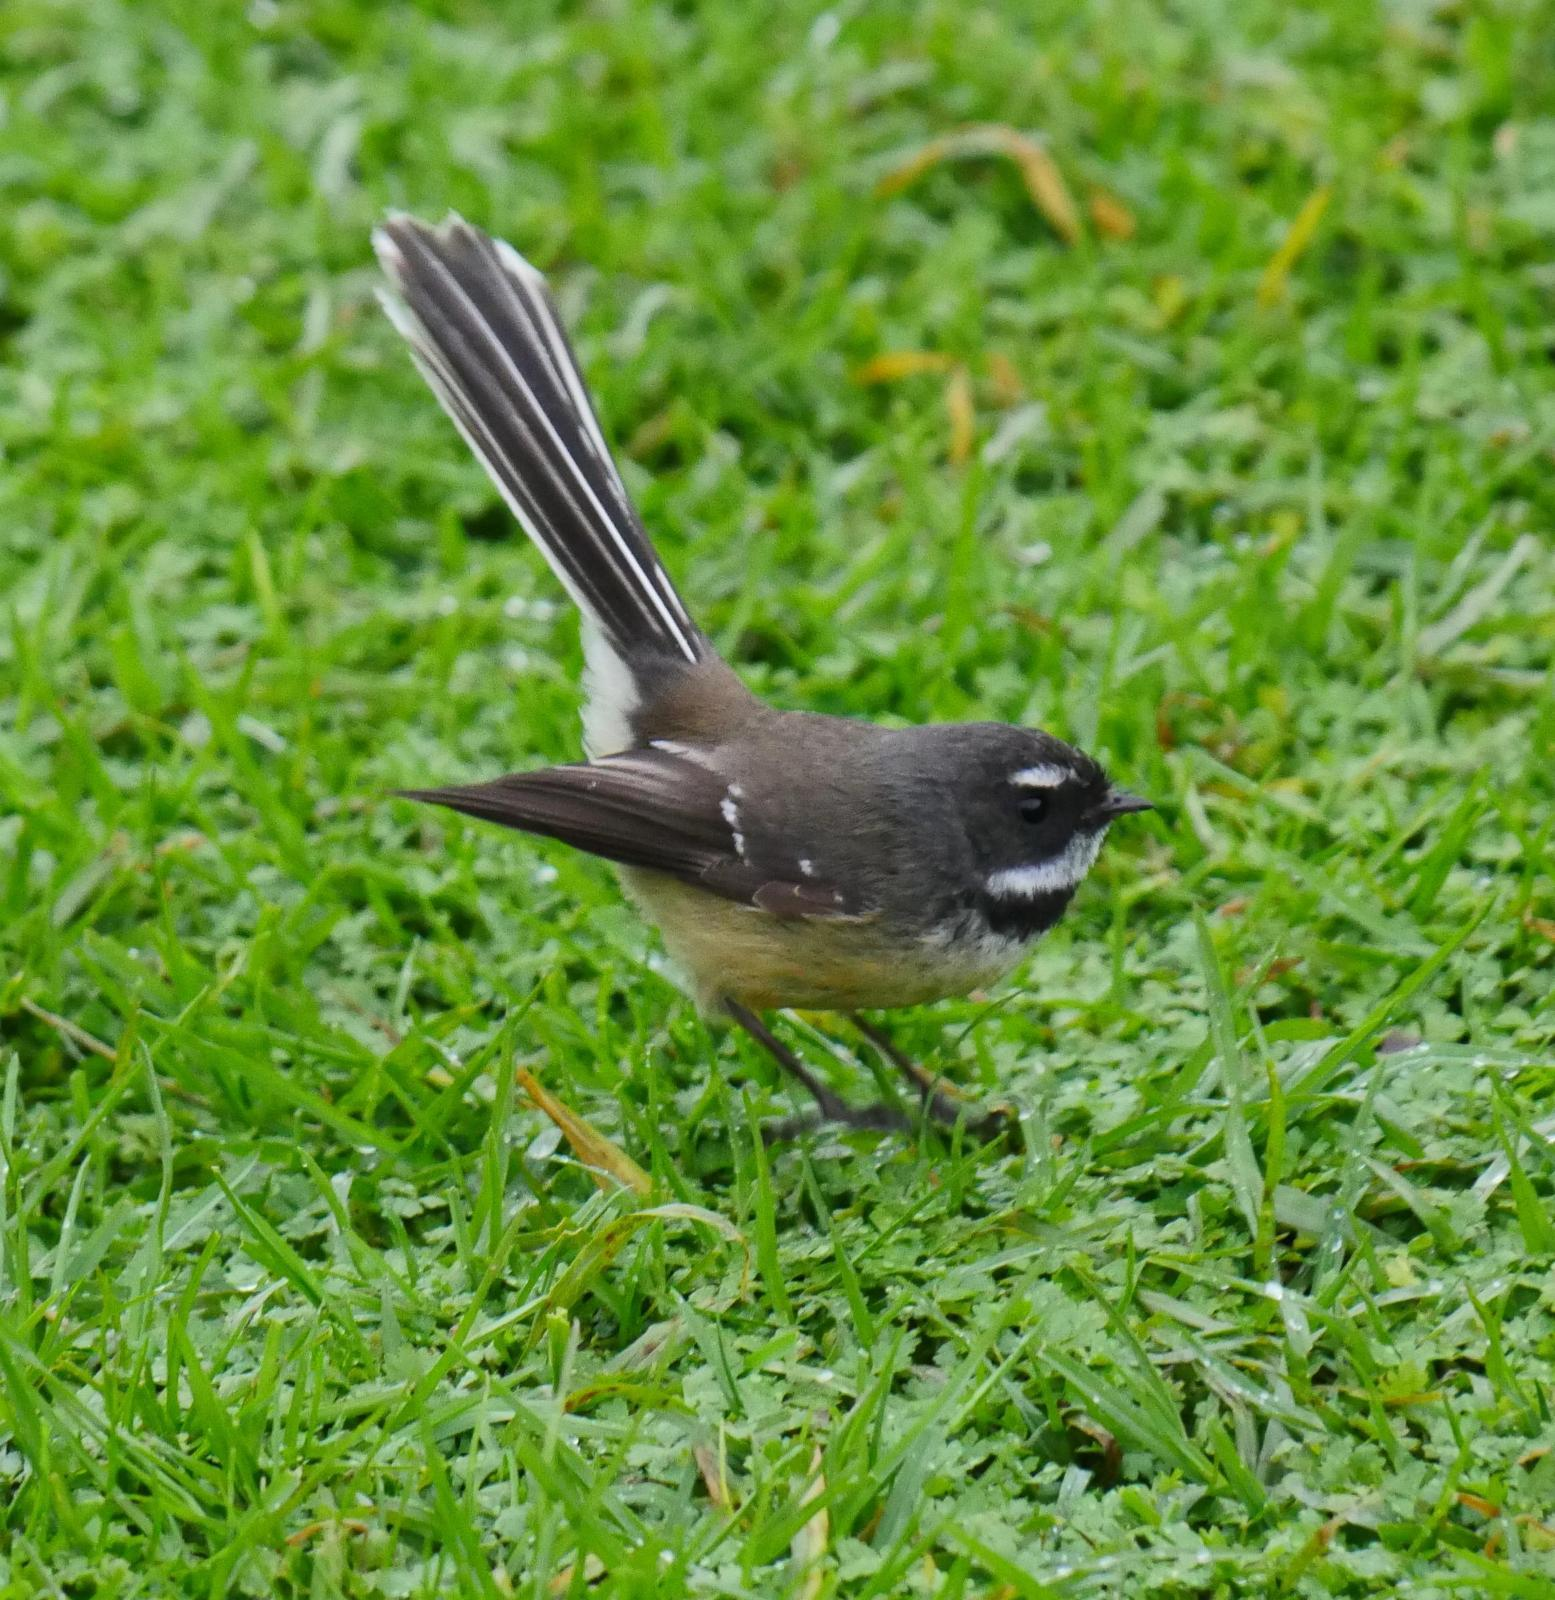 New Zealand Fantail Photo by Peter Lowe